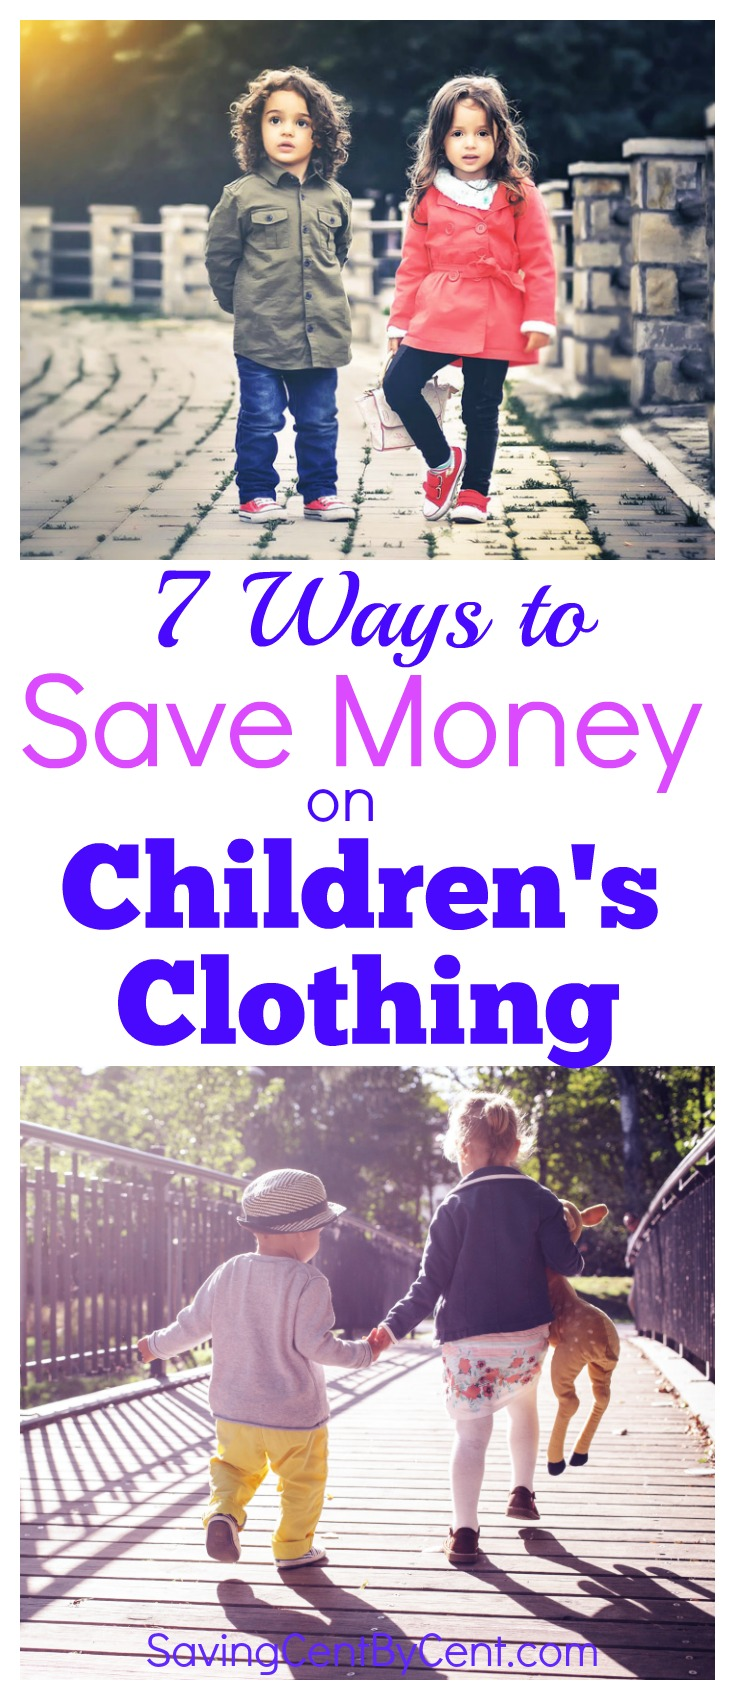 Save Money on Children's Clothing